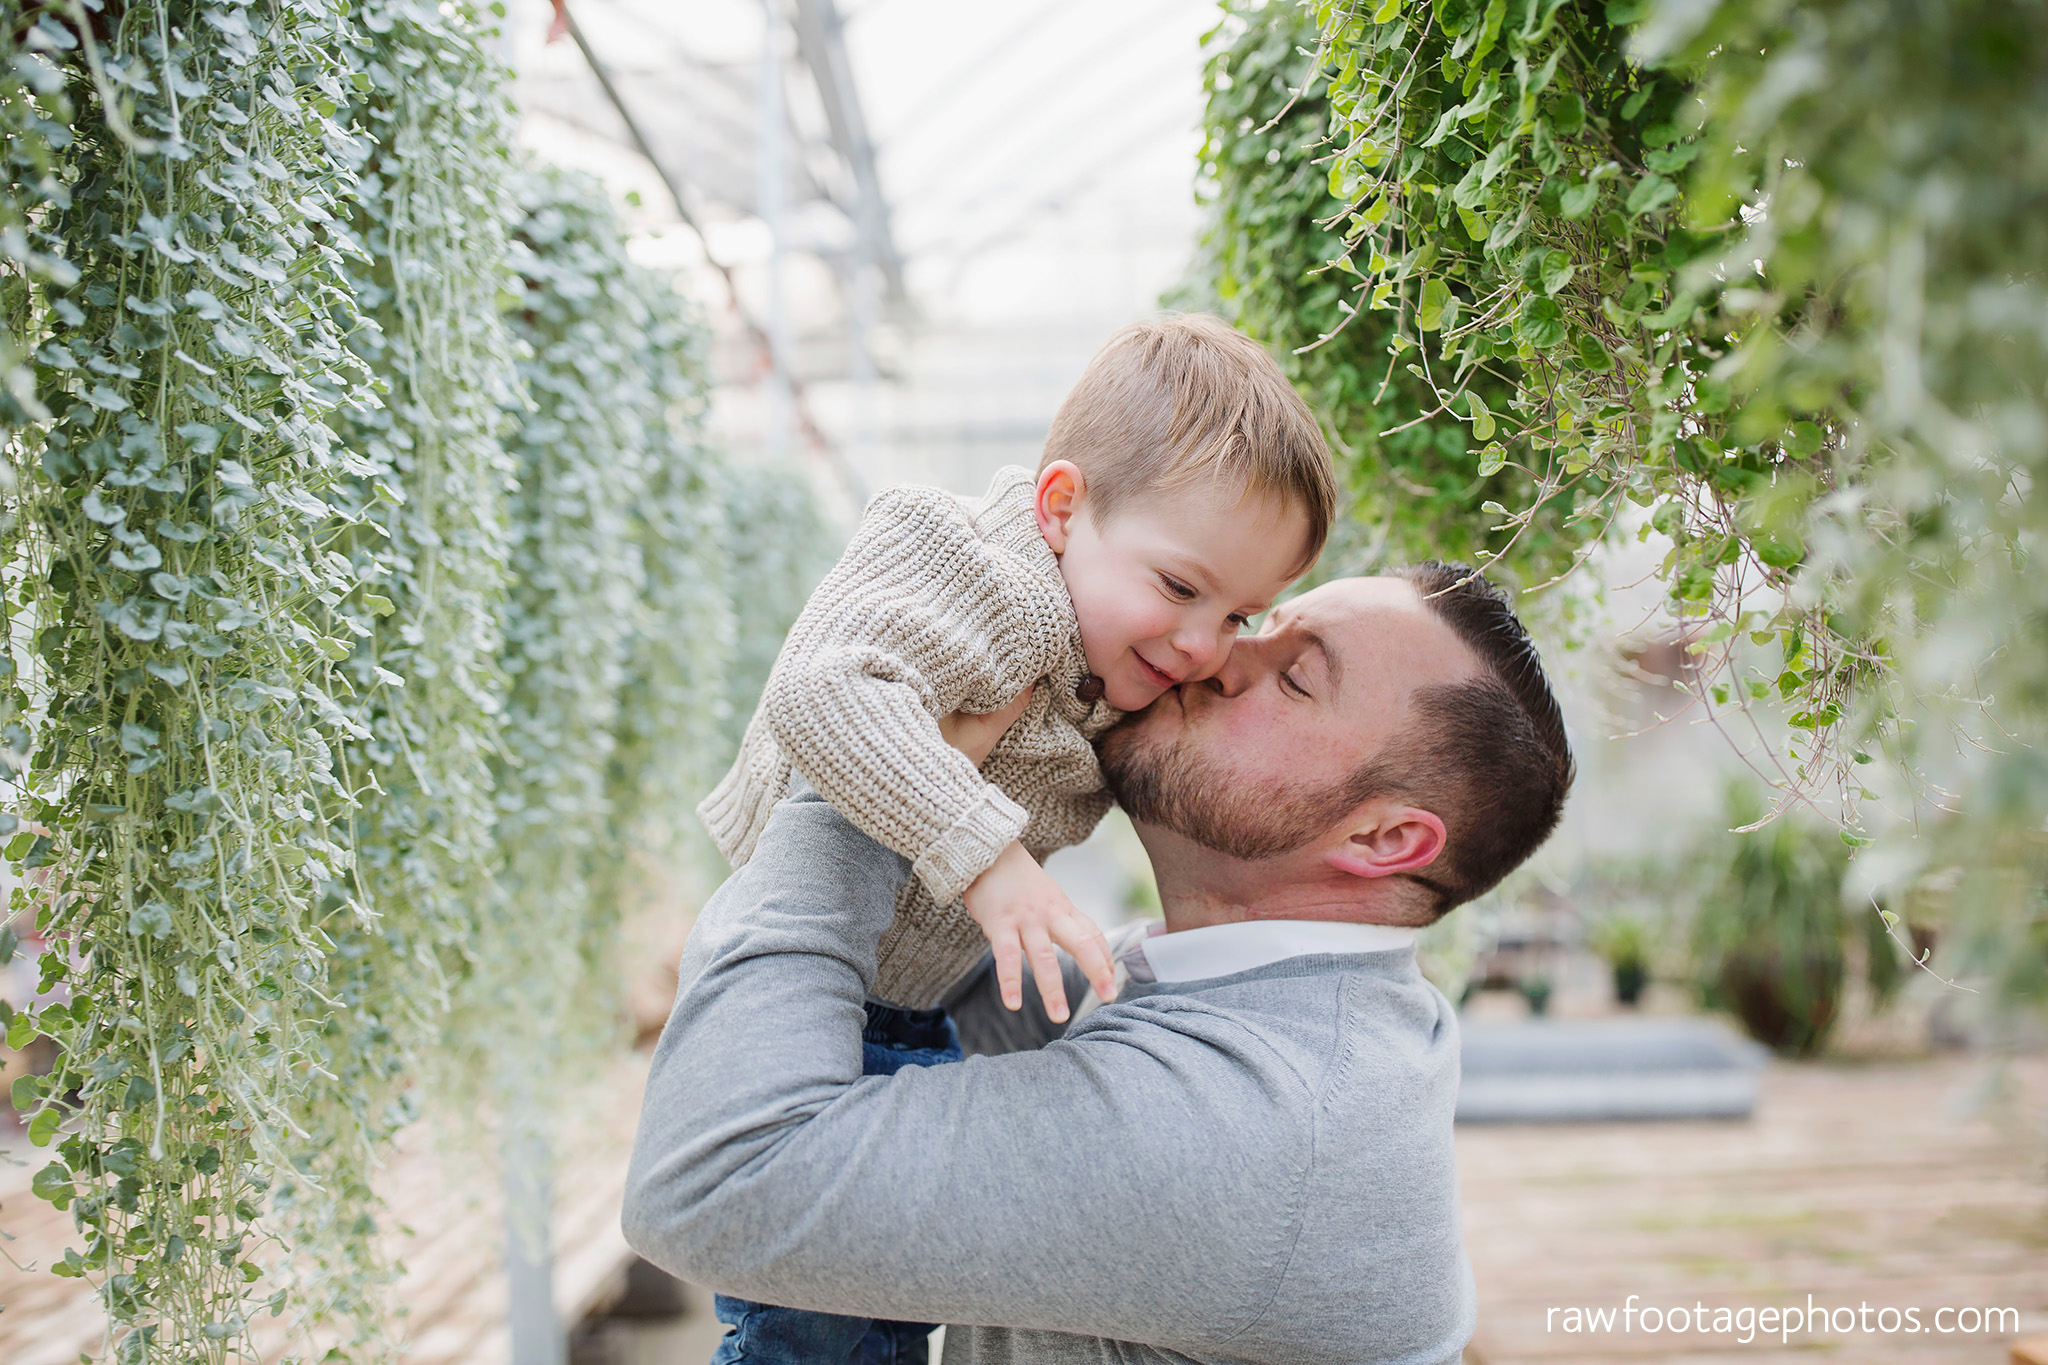 london_ontario_family_photographer-greenhouse_photos-winter_field_photos-raw_footage_photography020.jpg